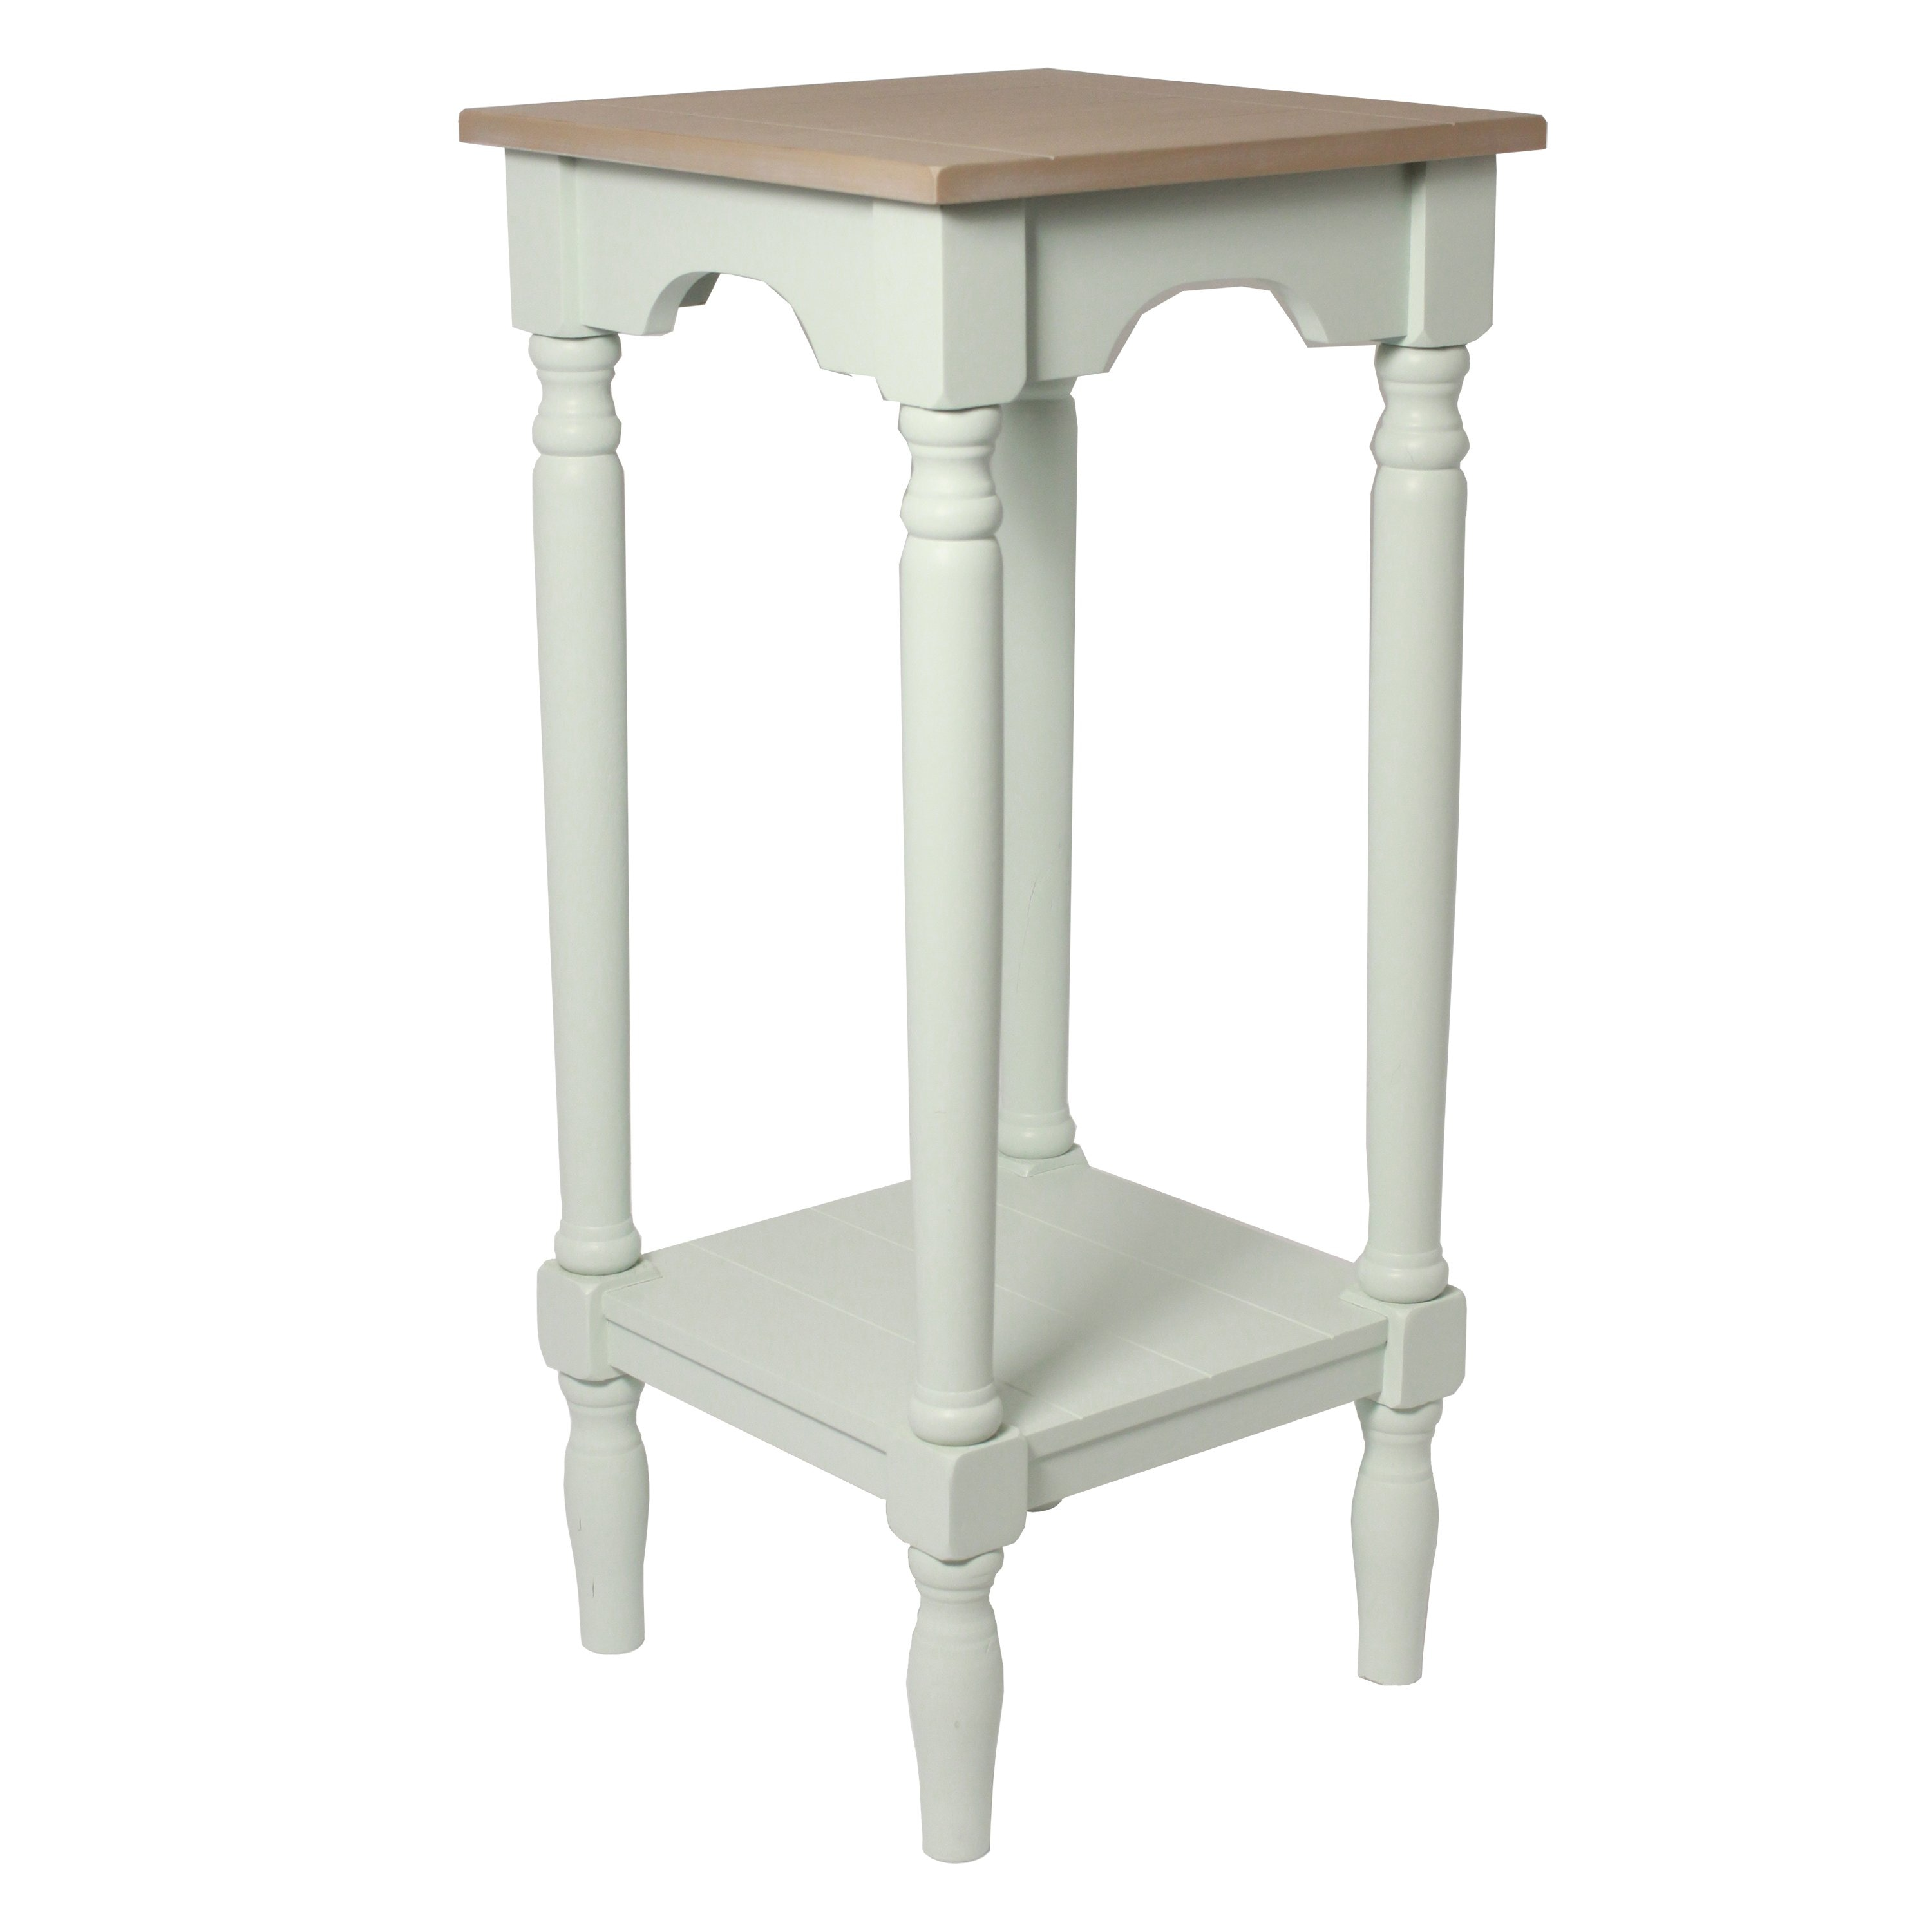 urban designs cyra light blue wood accent table free shipping today pink chandelier lamp chest for living room clothes organiser solid marble side ikea narrow end navy chair patio